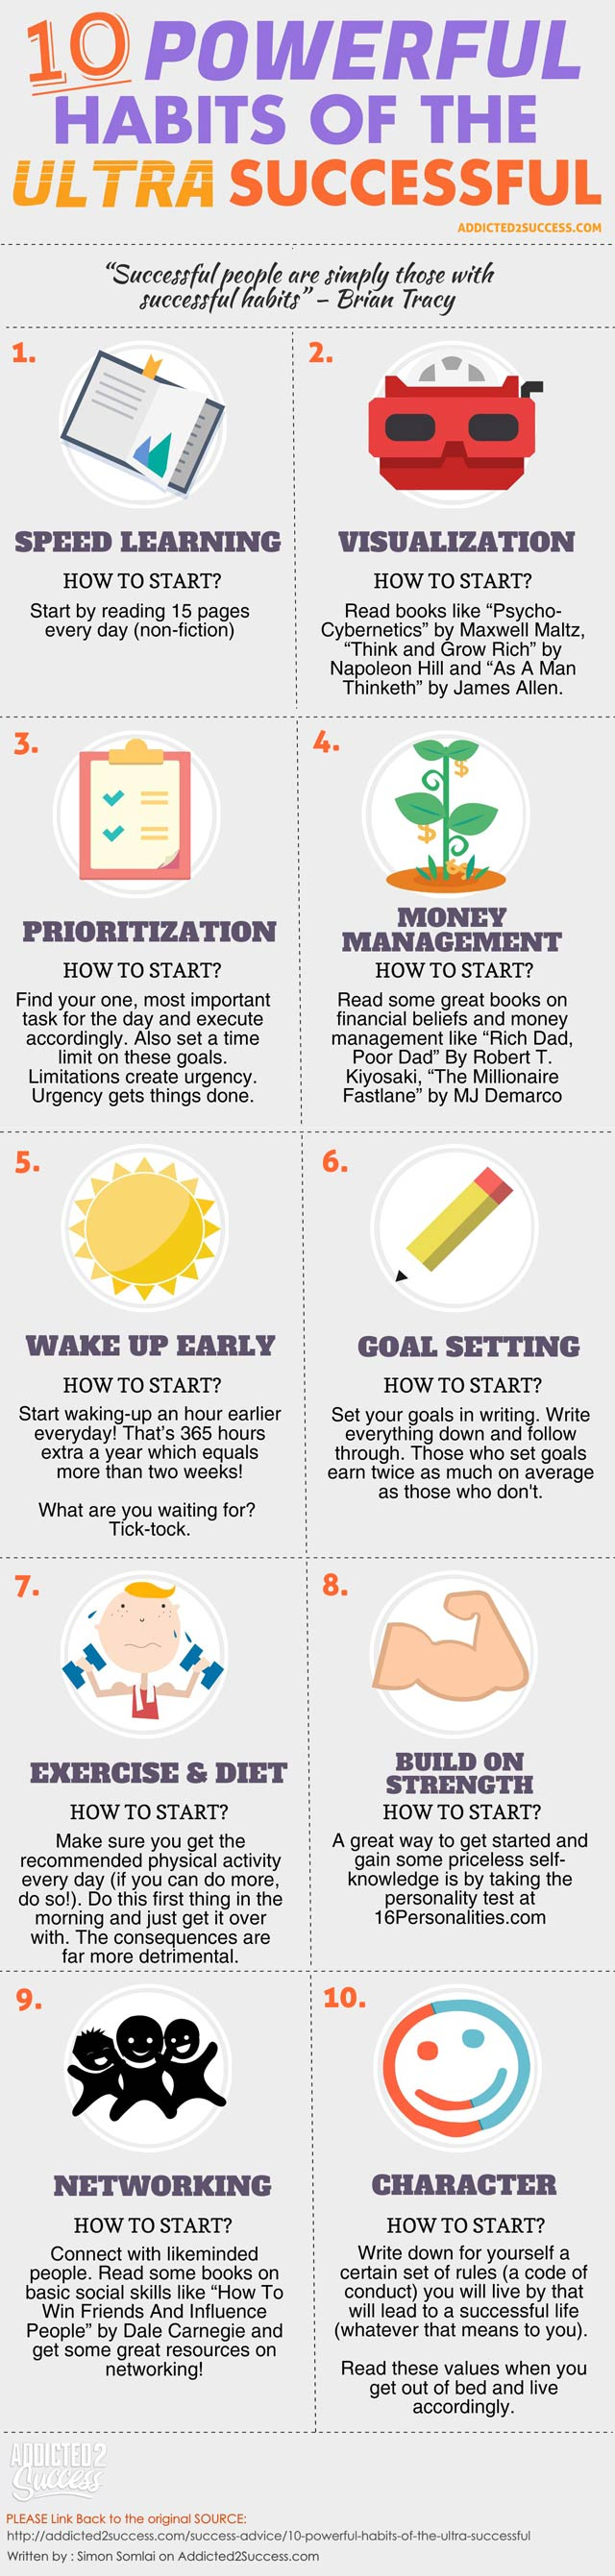 Habits-of-Successful-Entrepreneurs